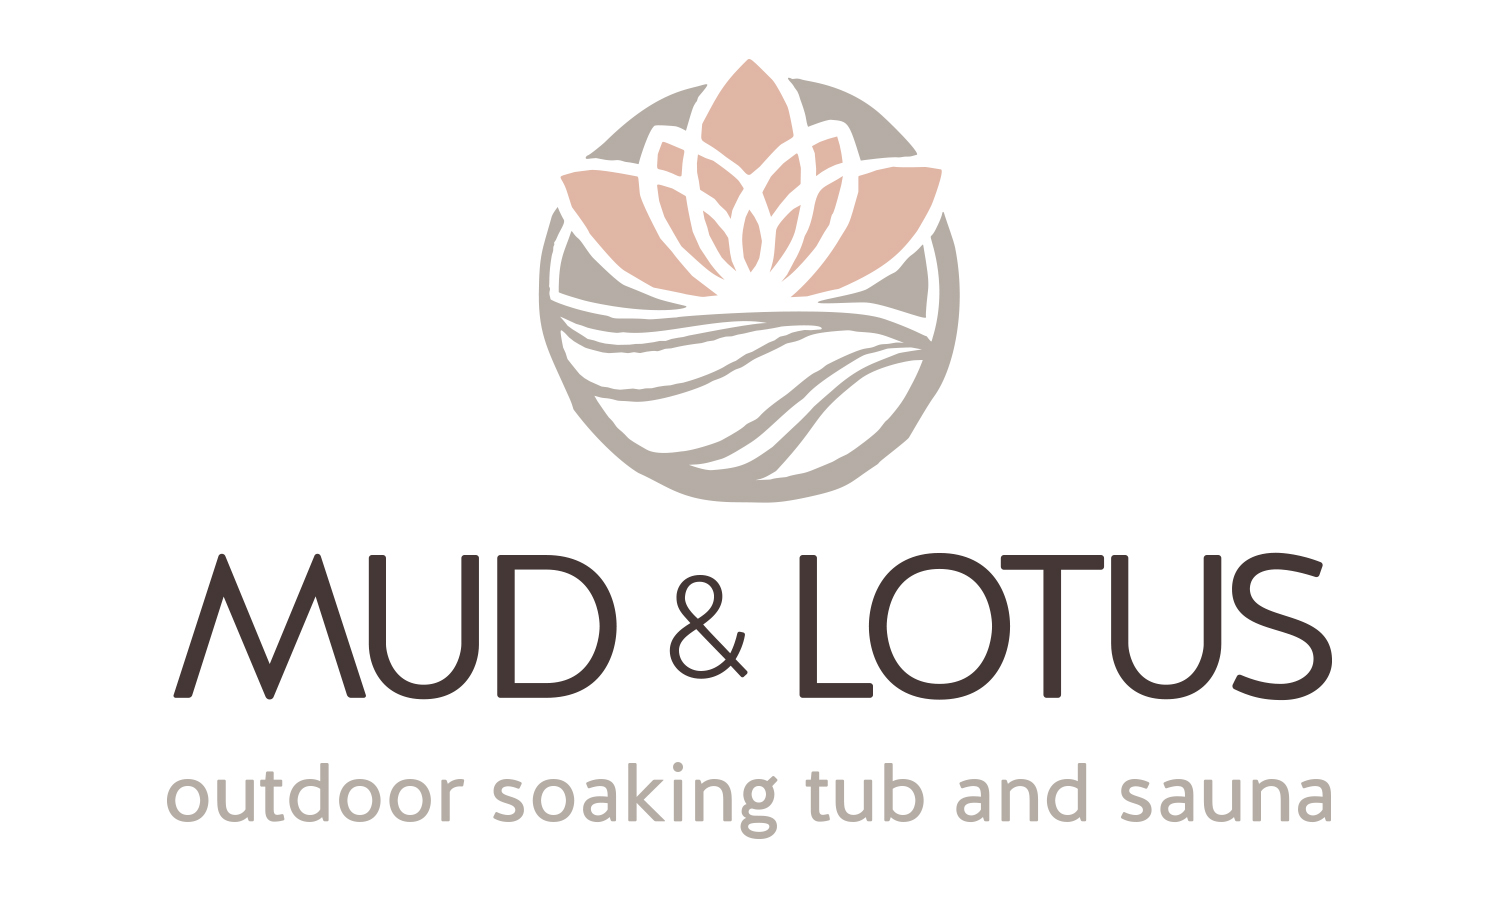 Mud & Lotus Outdoor Soaking Tub and Sauna